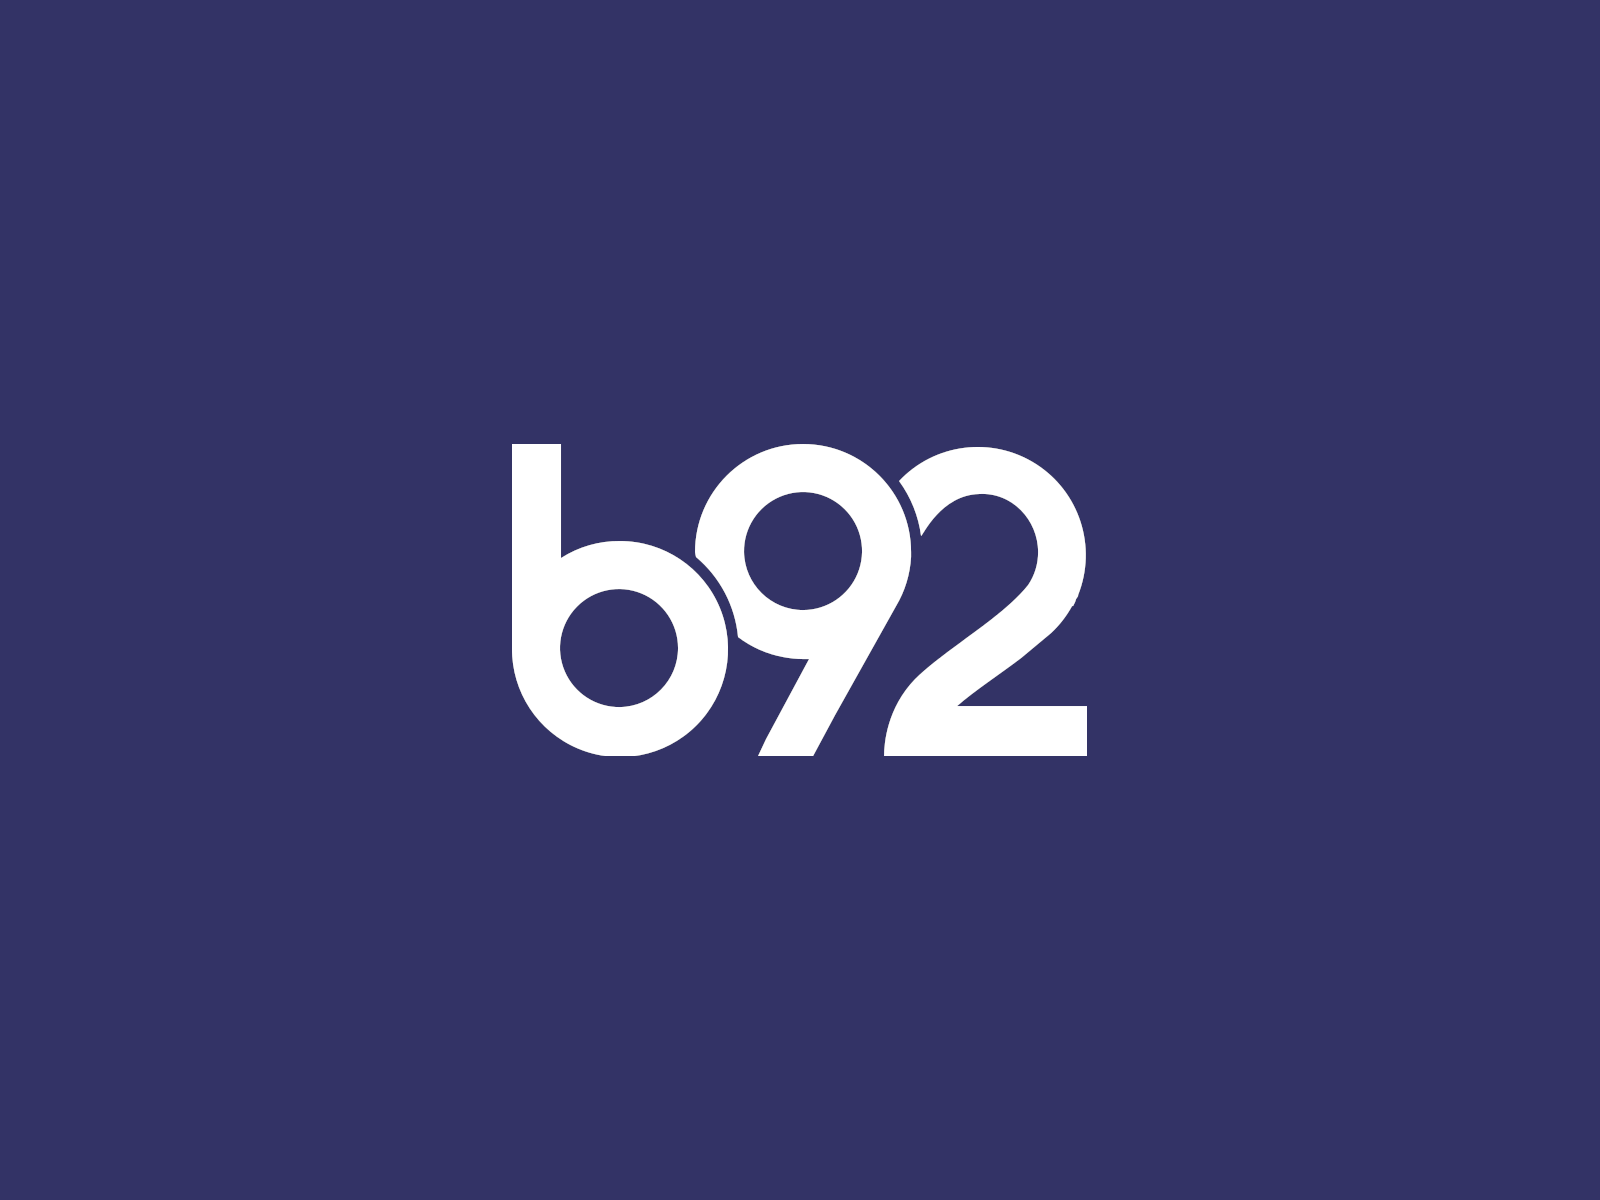 B92 - internet, radio and TV station; Latest news in English - on B92.net